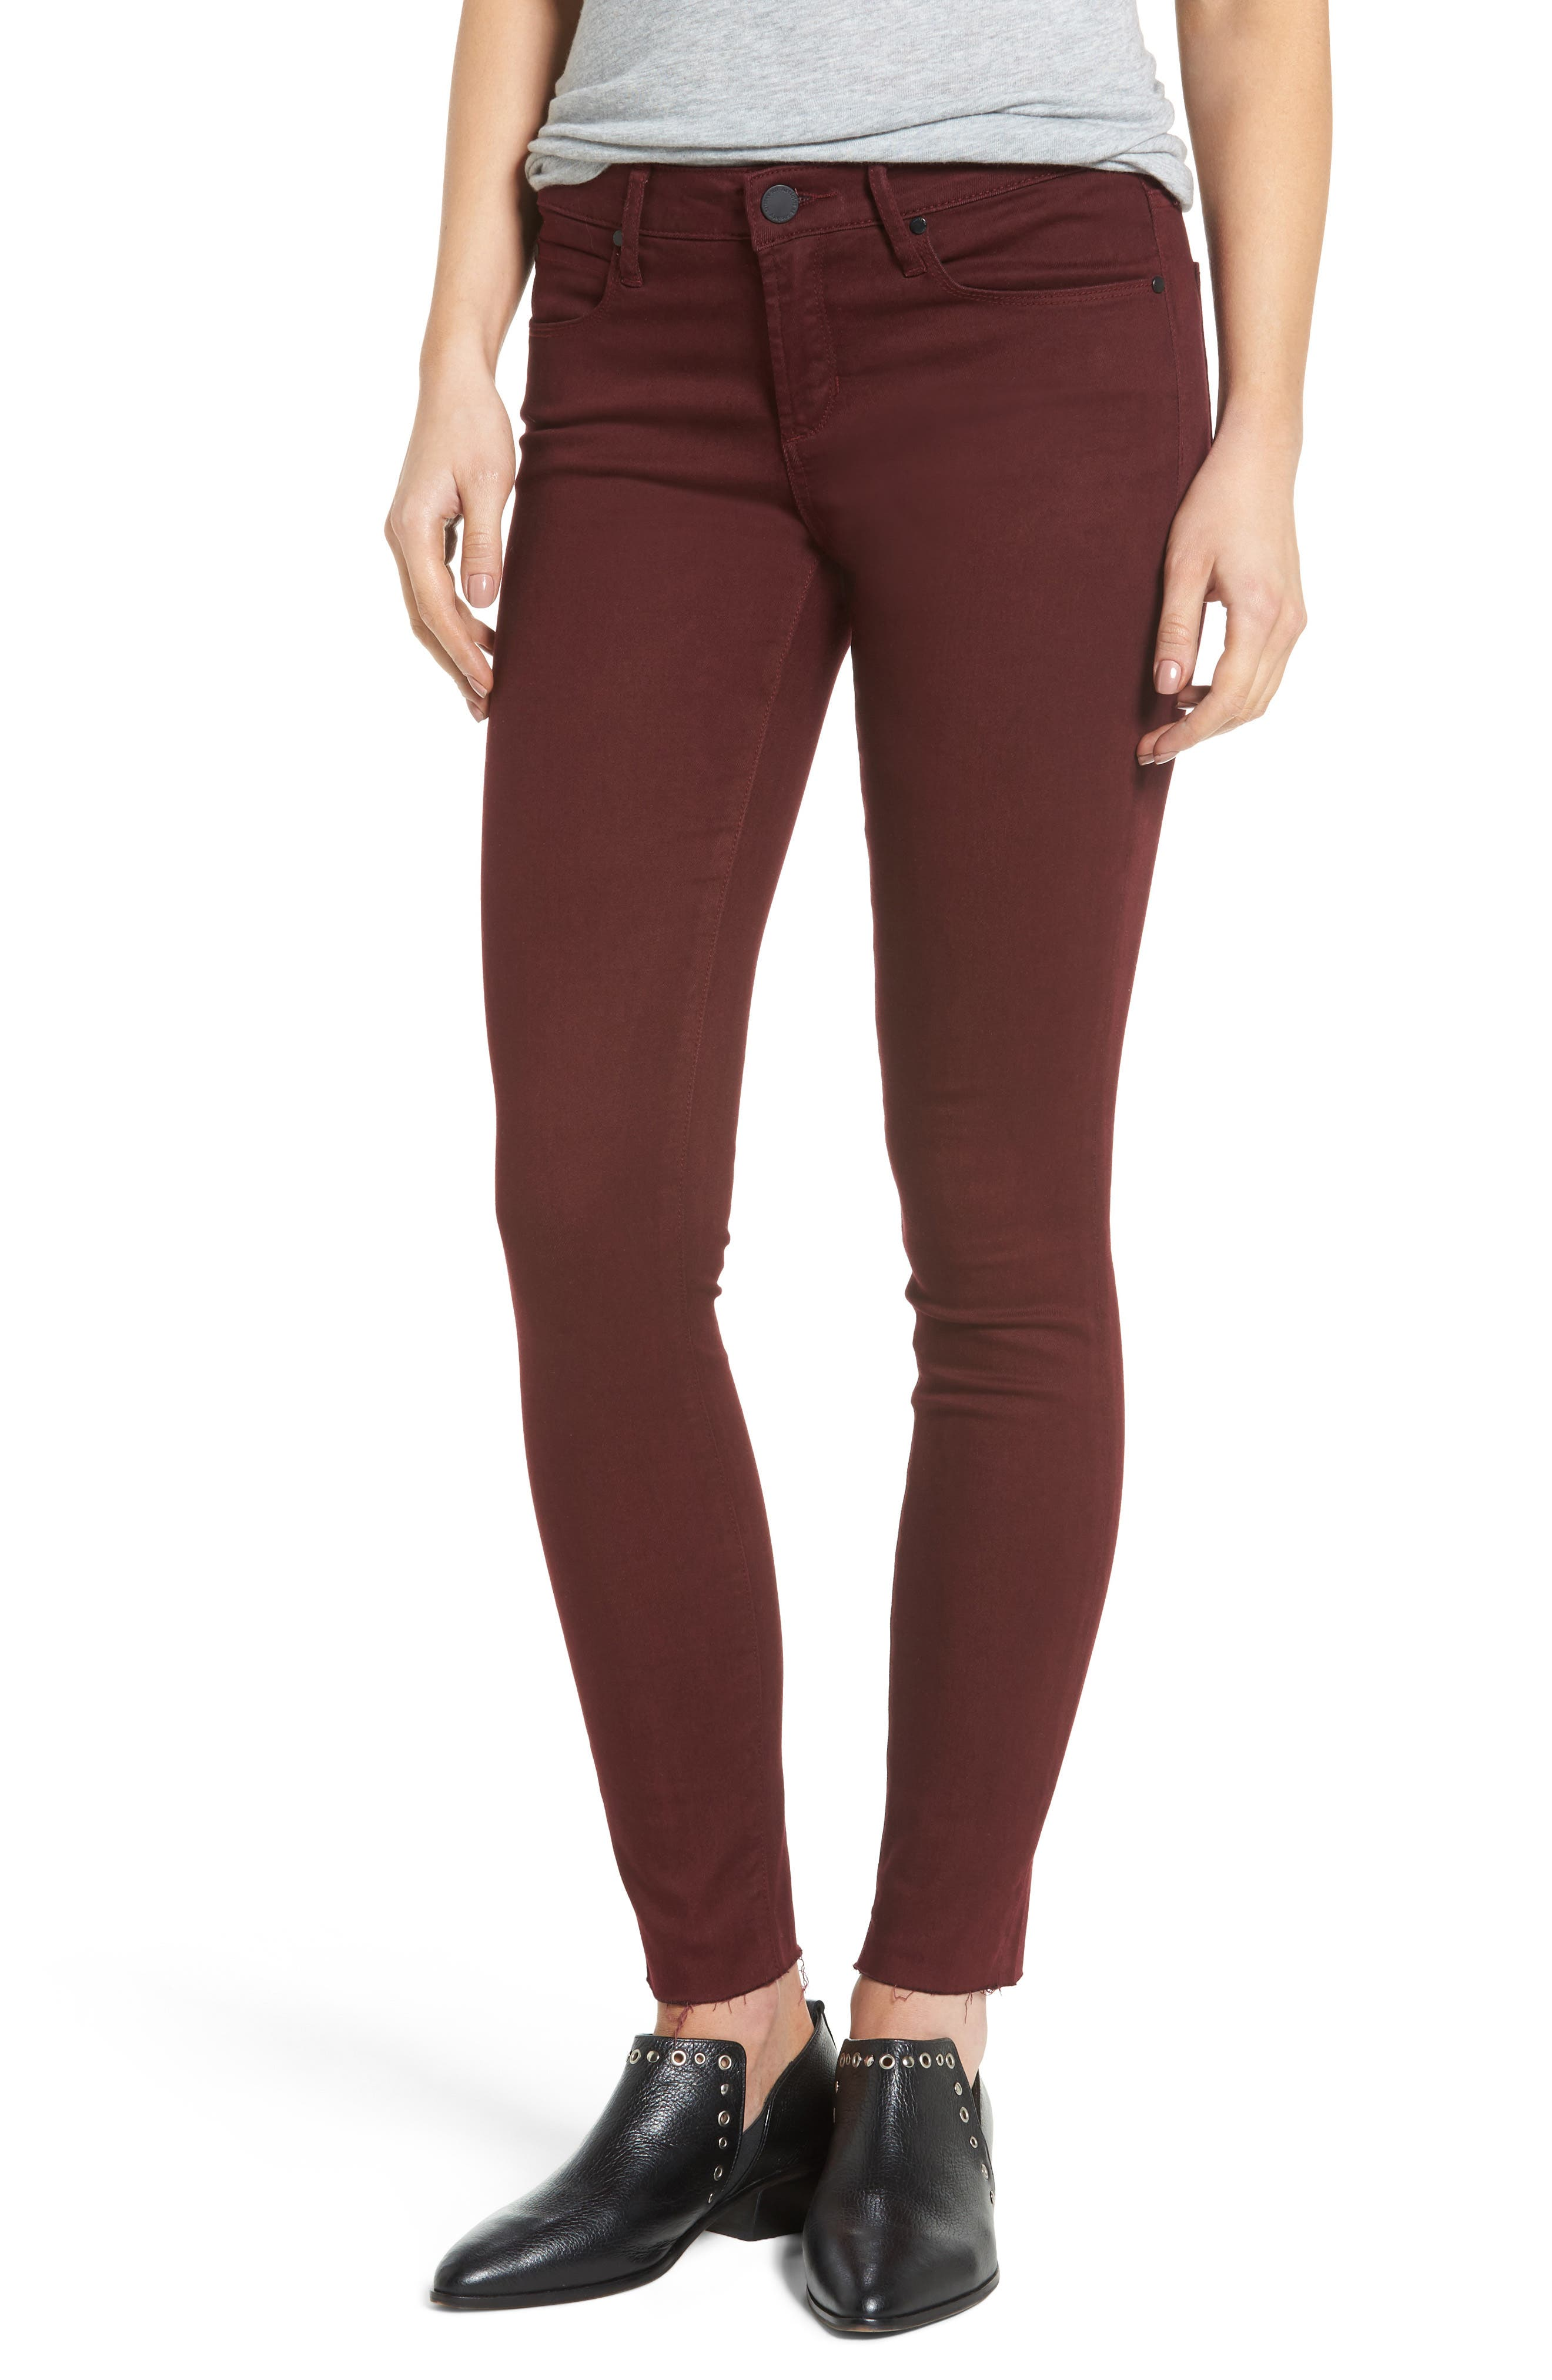 Alternate Image 1 Selected - Articles of Society Sarah Skinny Jeans (Red Eye)